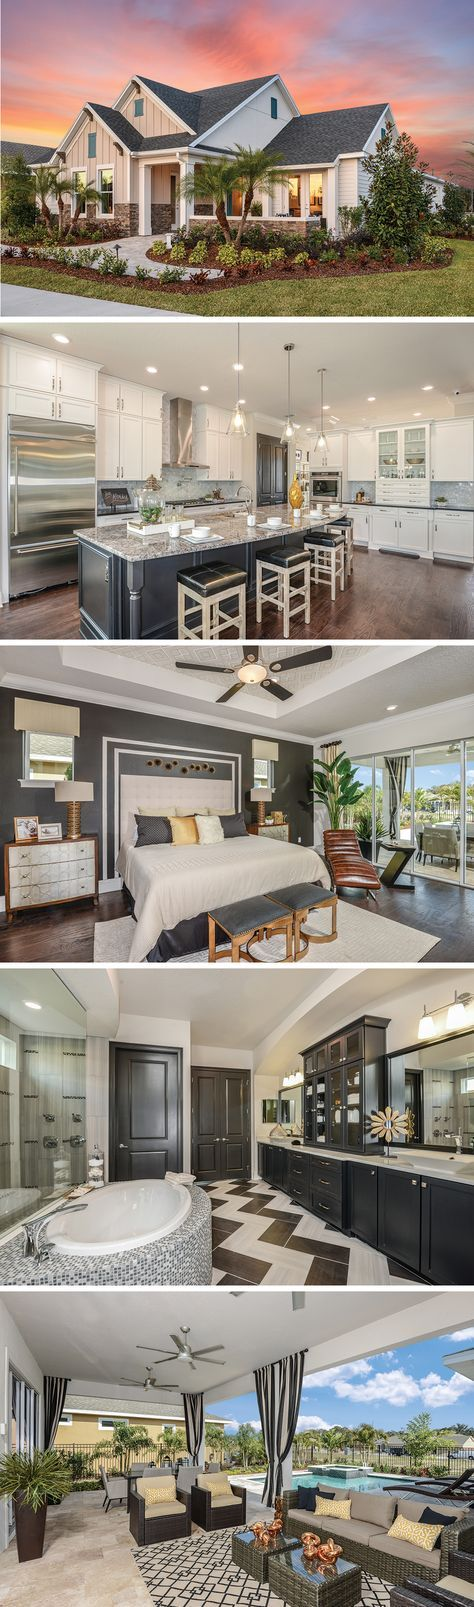 The Edencrest by David Weekley Homes in Encore is a 2 bedroom, 2 bath floorplan that features an open kitchen and family room layout, a large owners retreat with tray ceilings and a private lanai. Custom home upgrades include an extended lanai, a shower in the master bathroom or a 3 car garage.